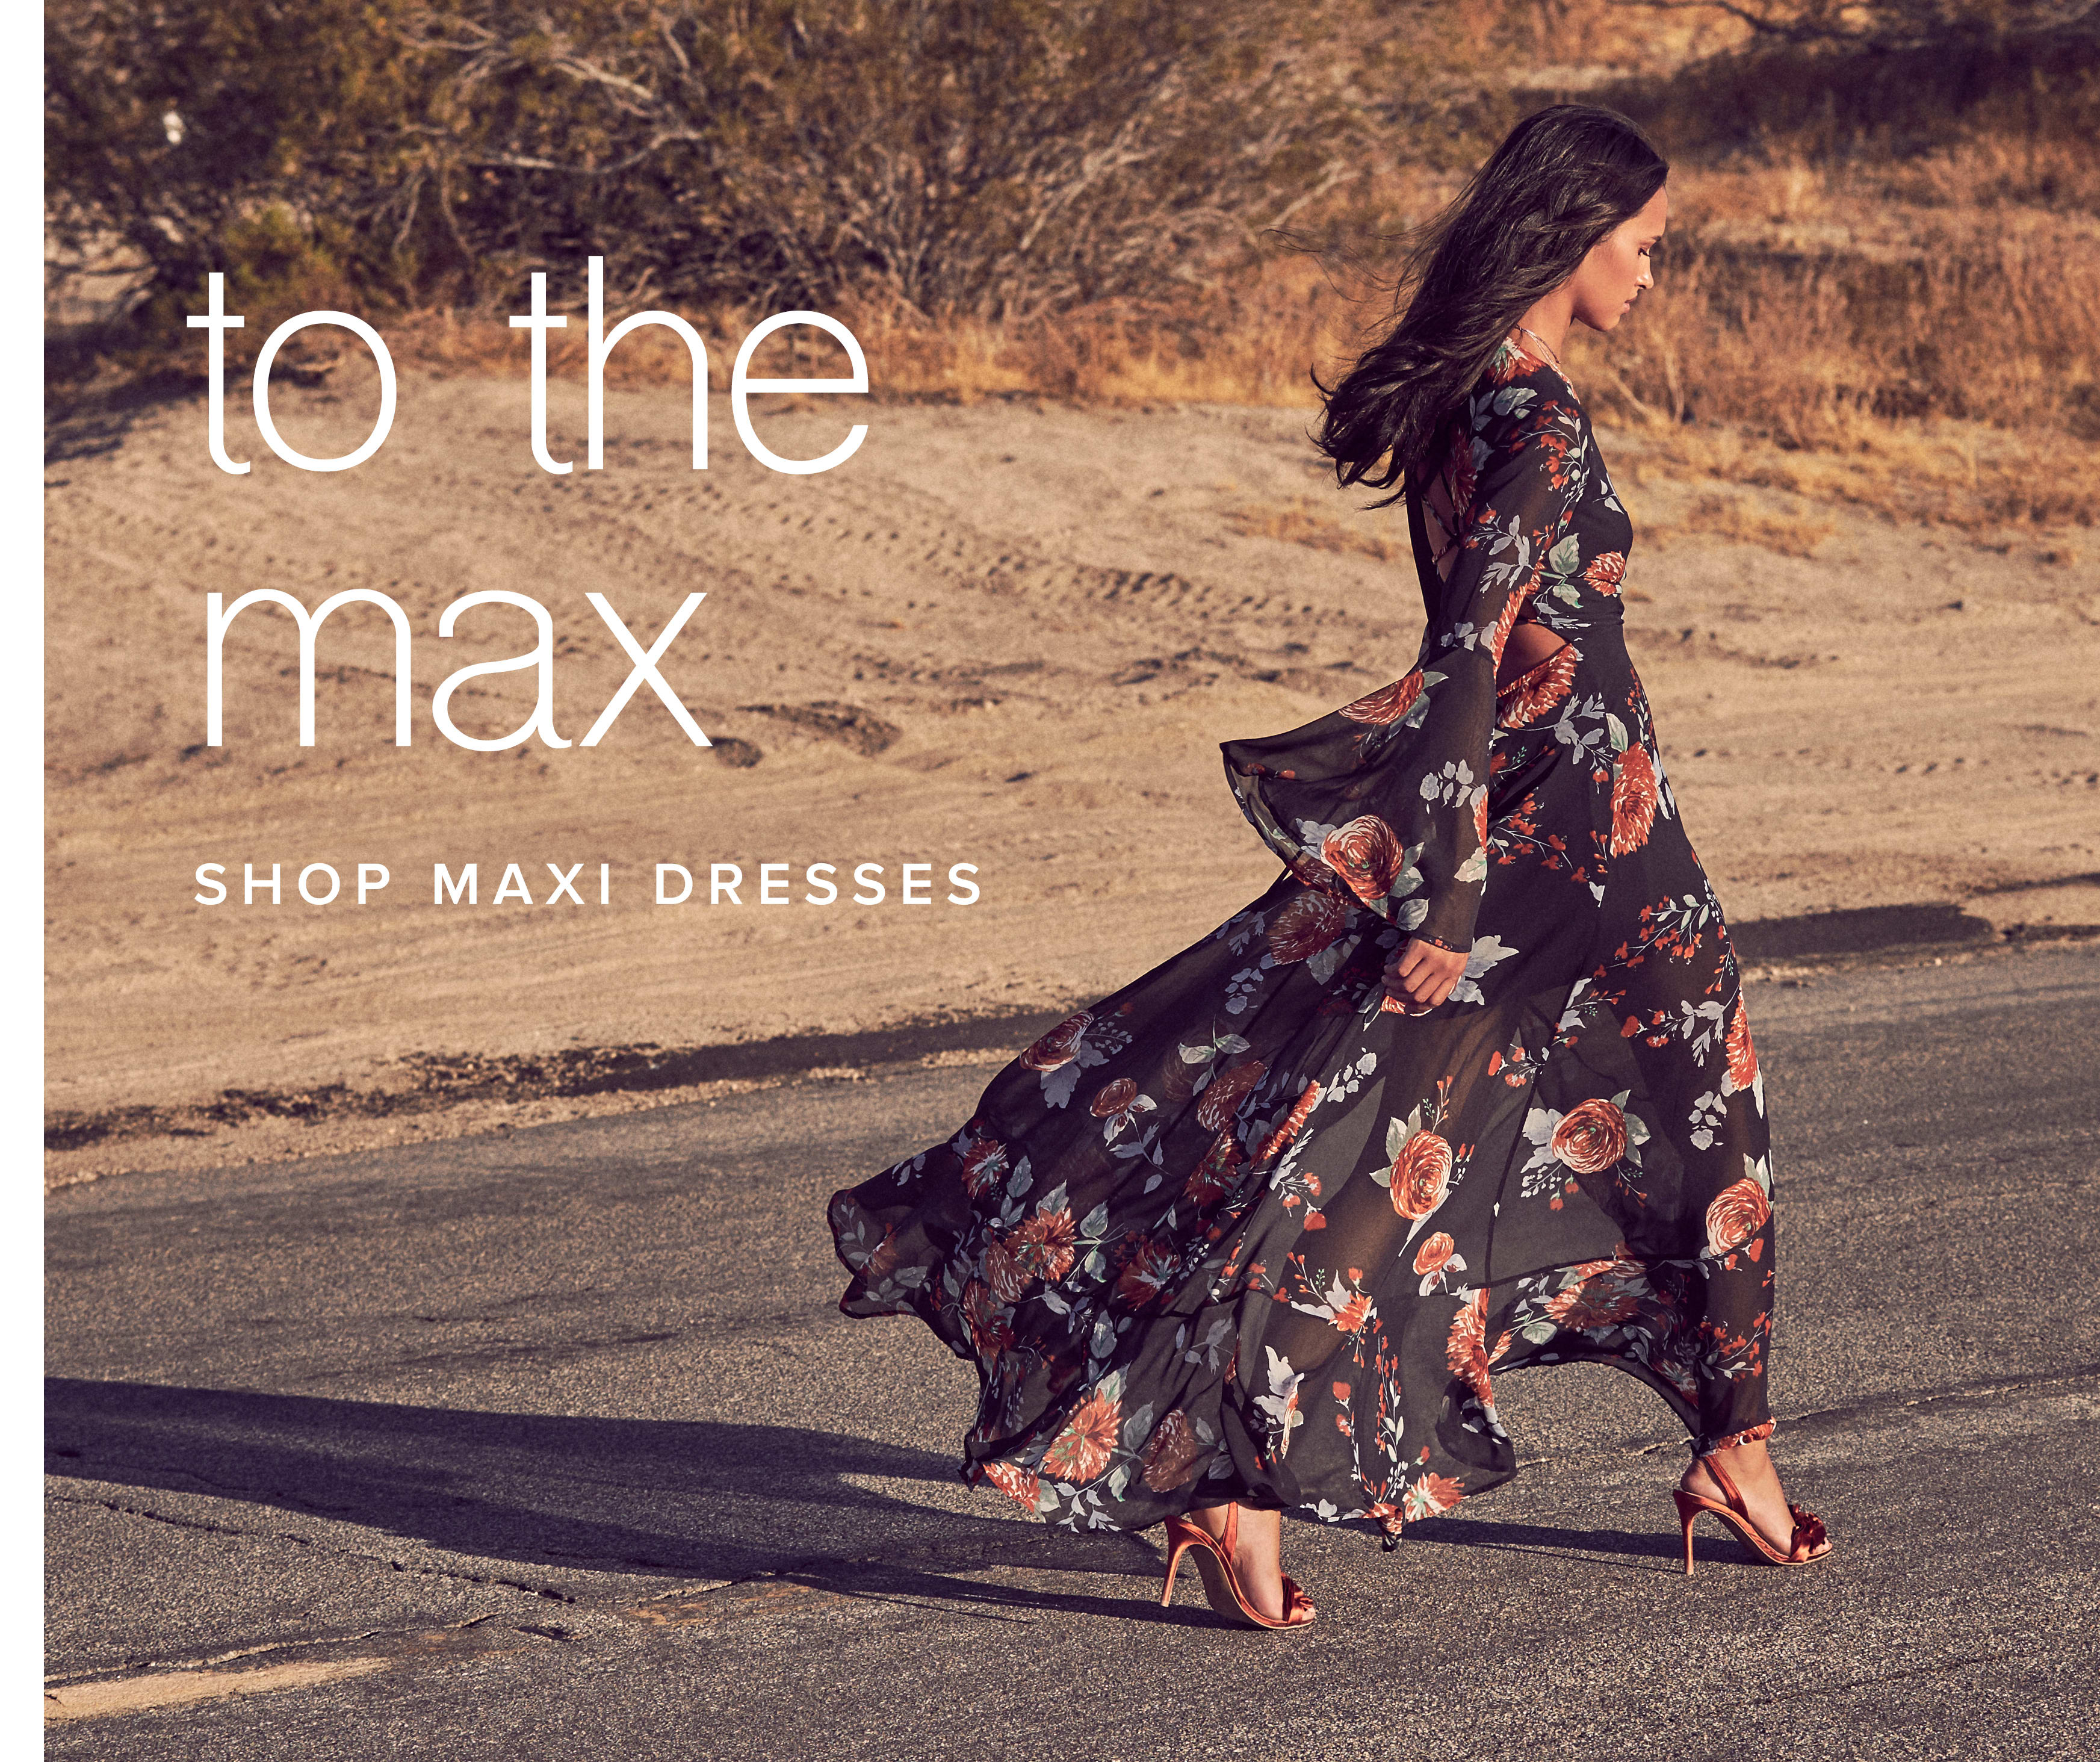 Shop Maxi Dresses and Gowns for Women.